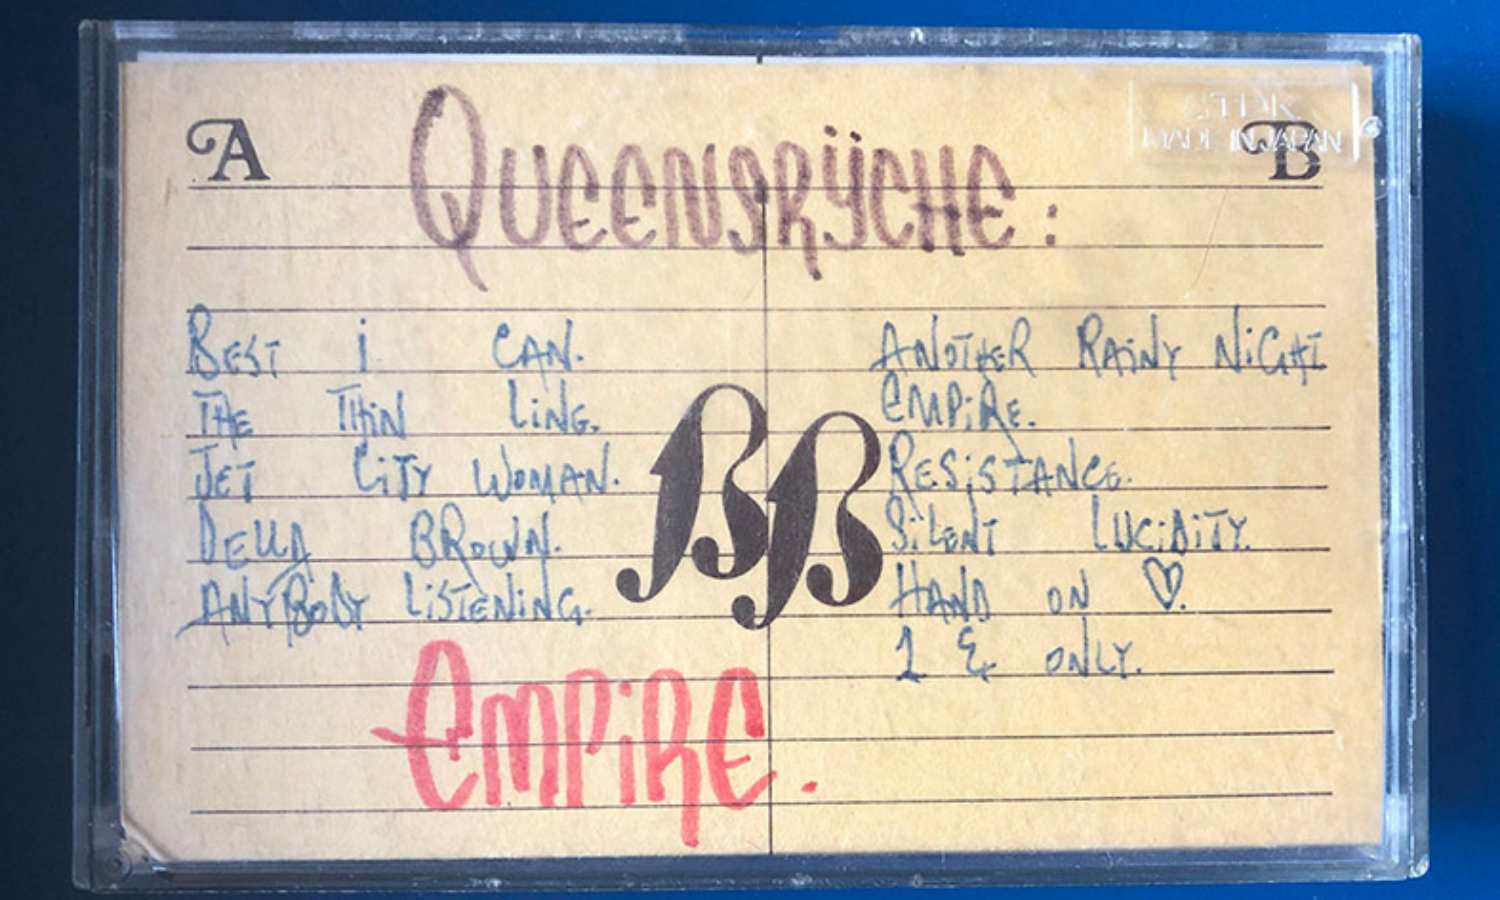 A cassette from BackBeat with Queensrÿche's album Empire.—Photo by author